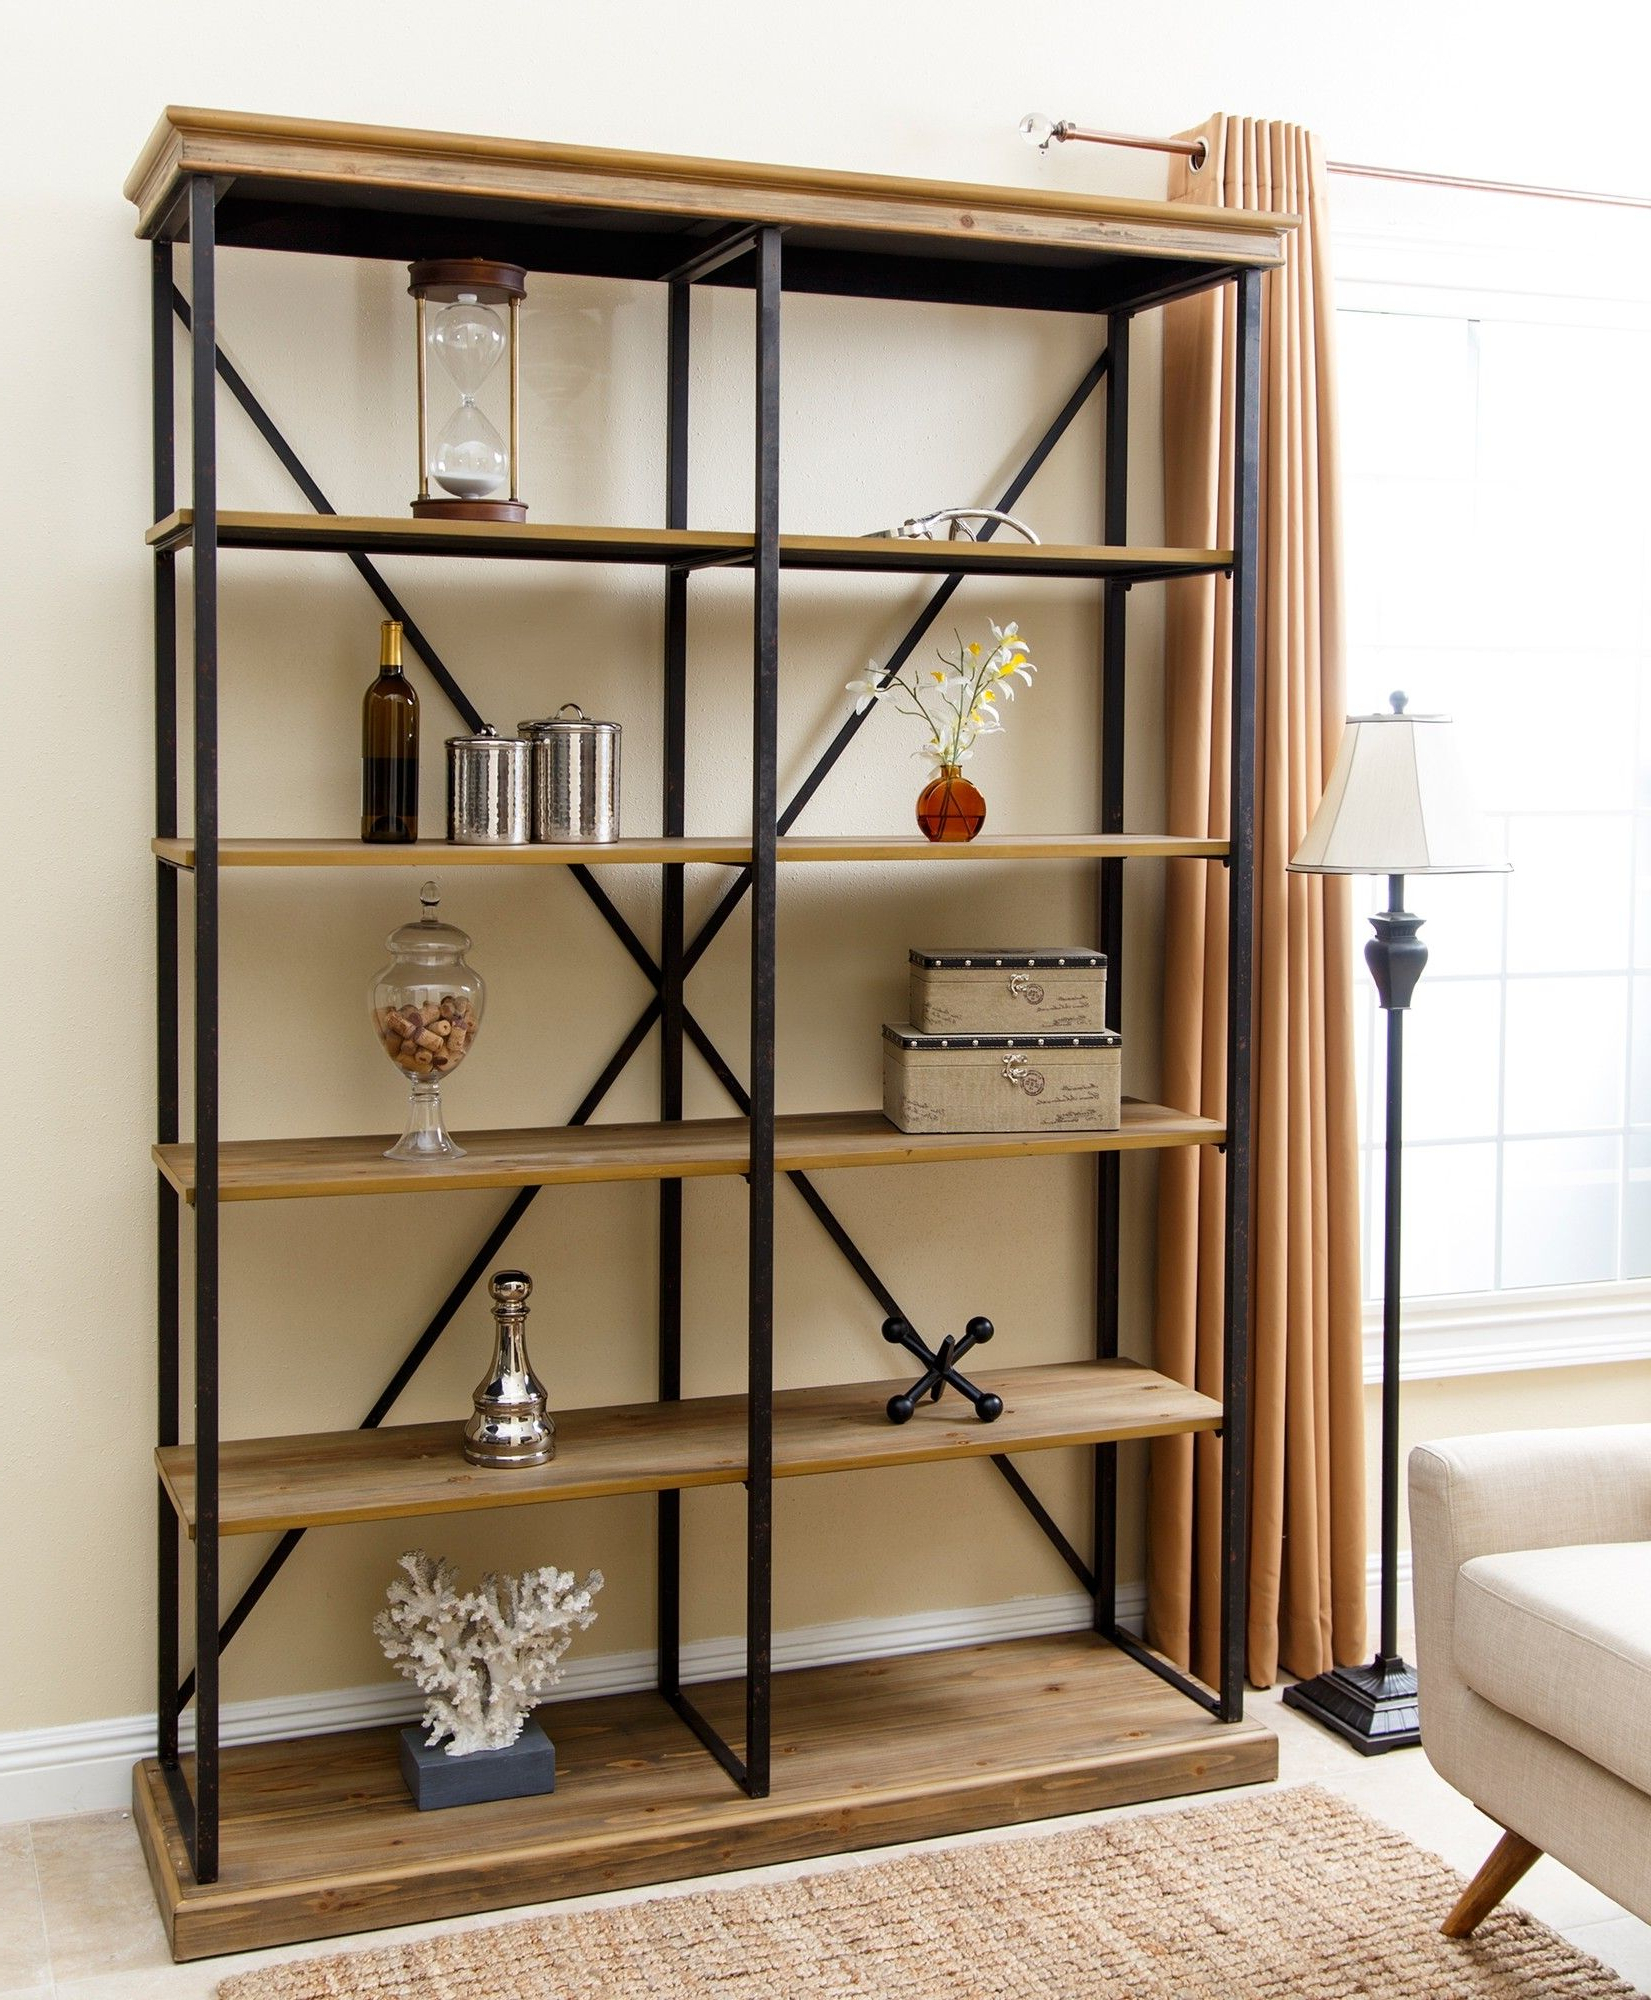 Etagere Bookcase (View 4 of 20)